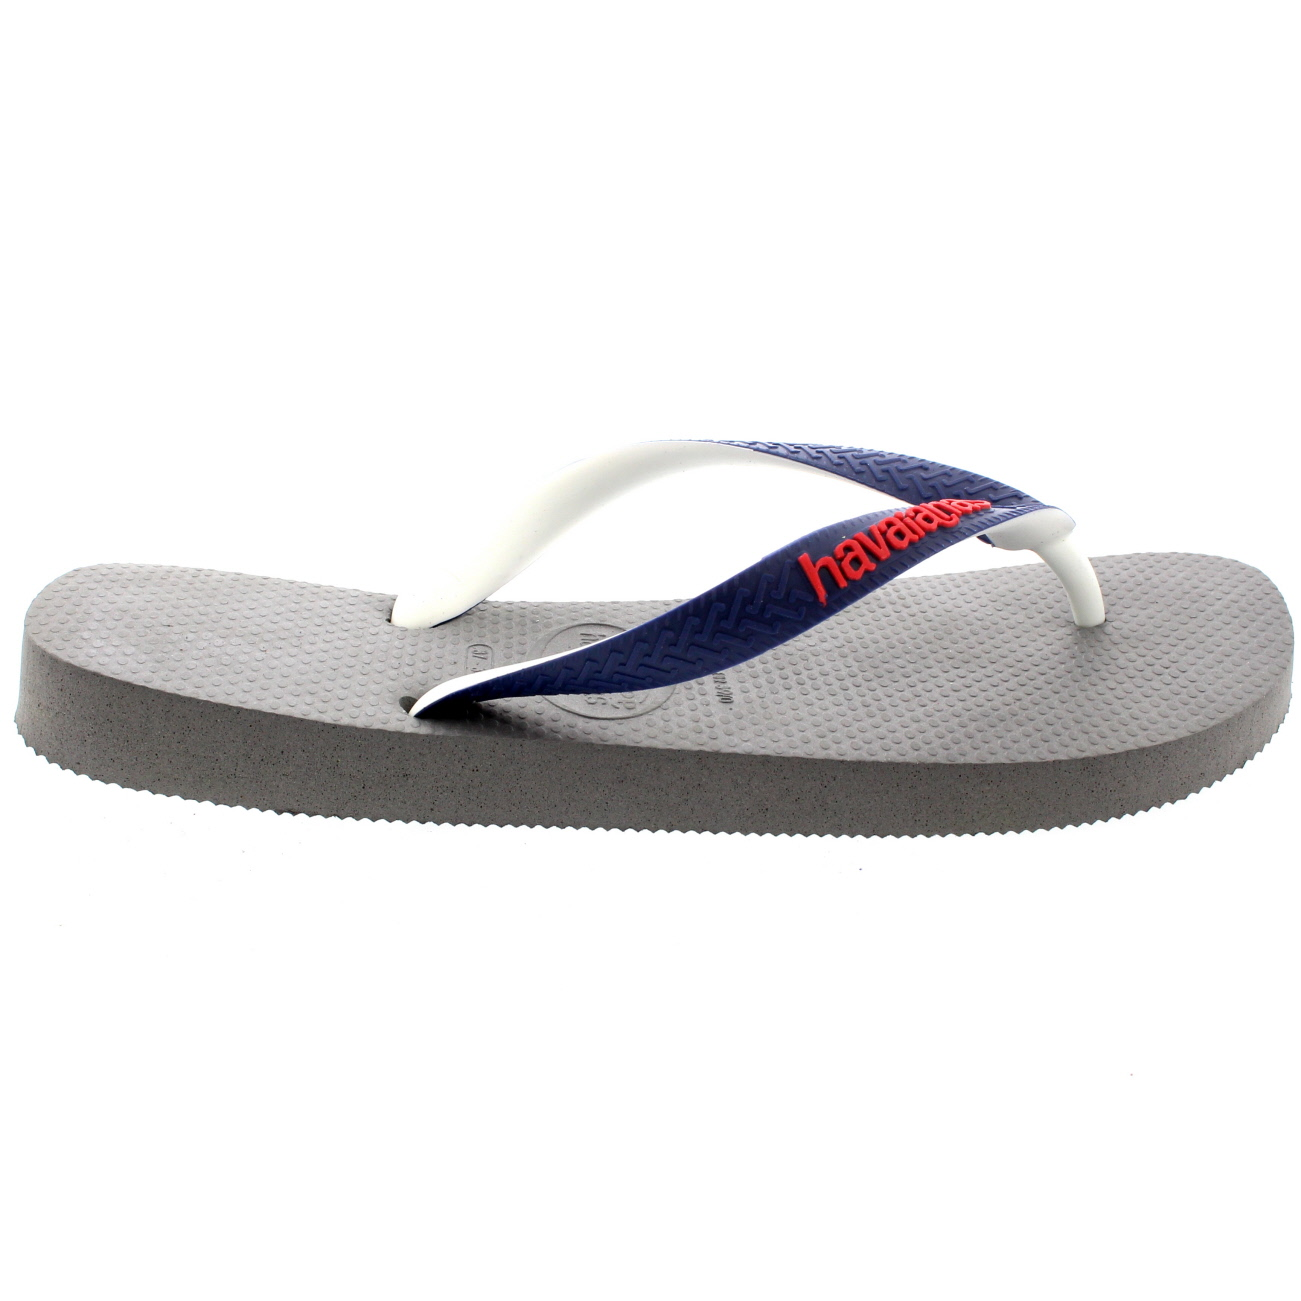 Mens Havaianas Top Mix Pool Holiday Beach Festival Flip Flops Sandals All Sizes